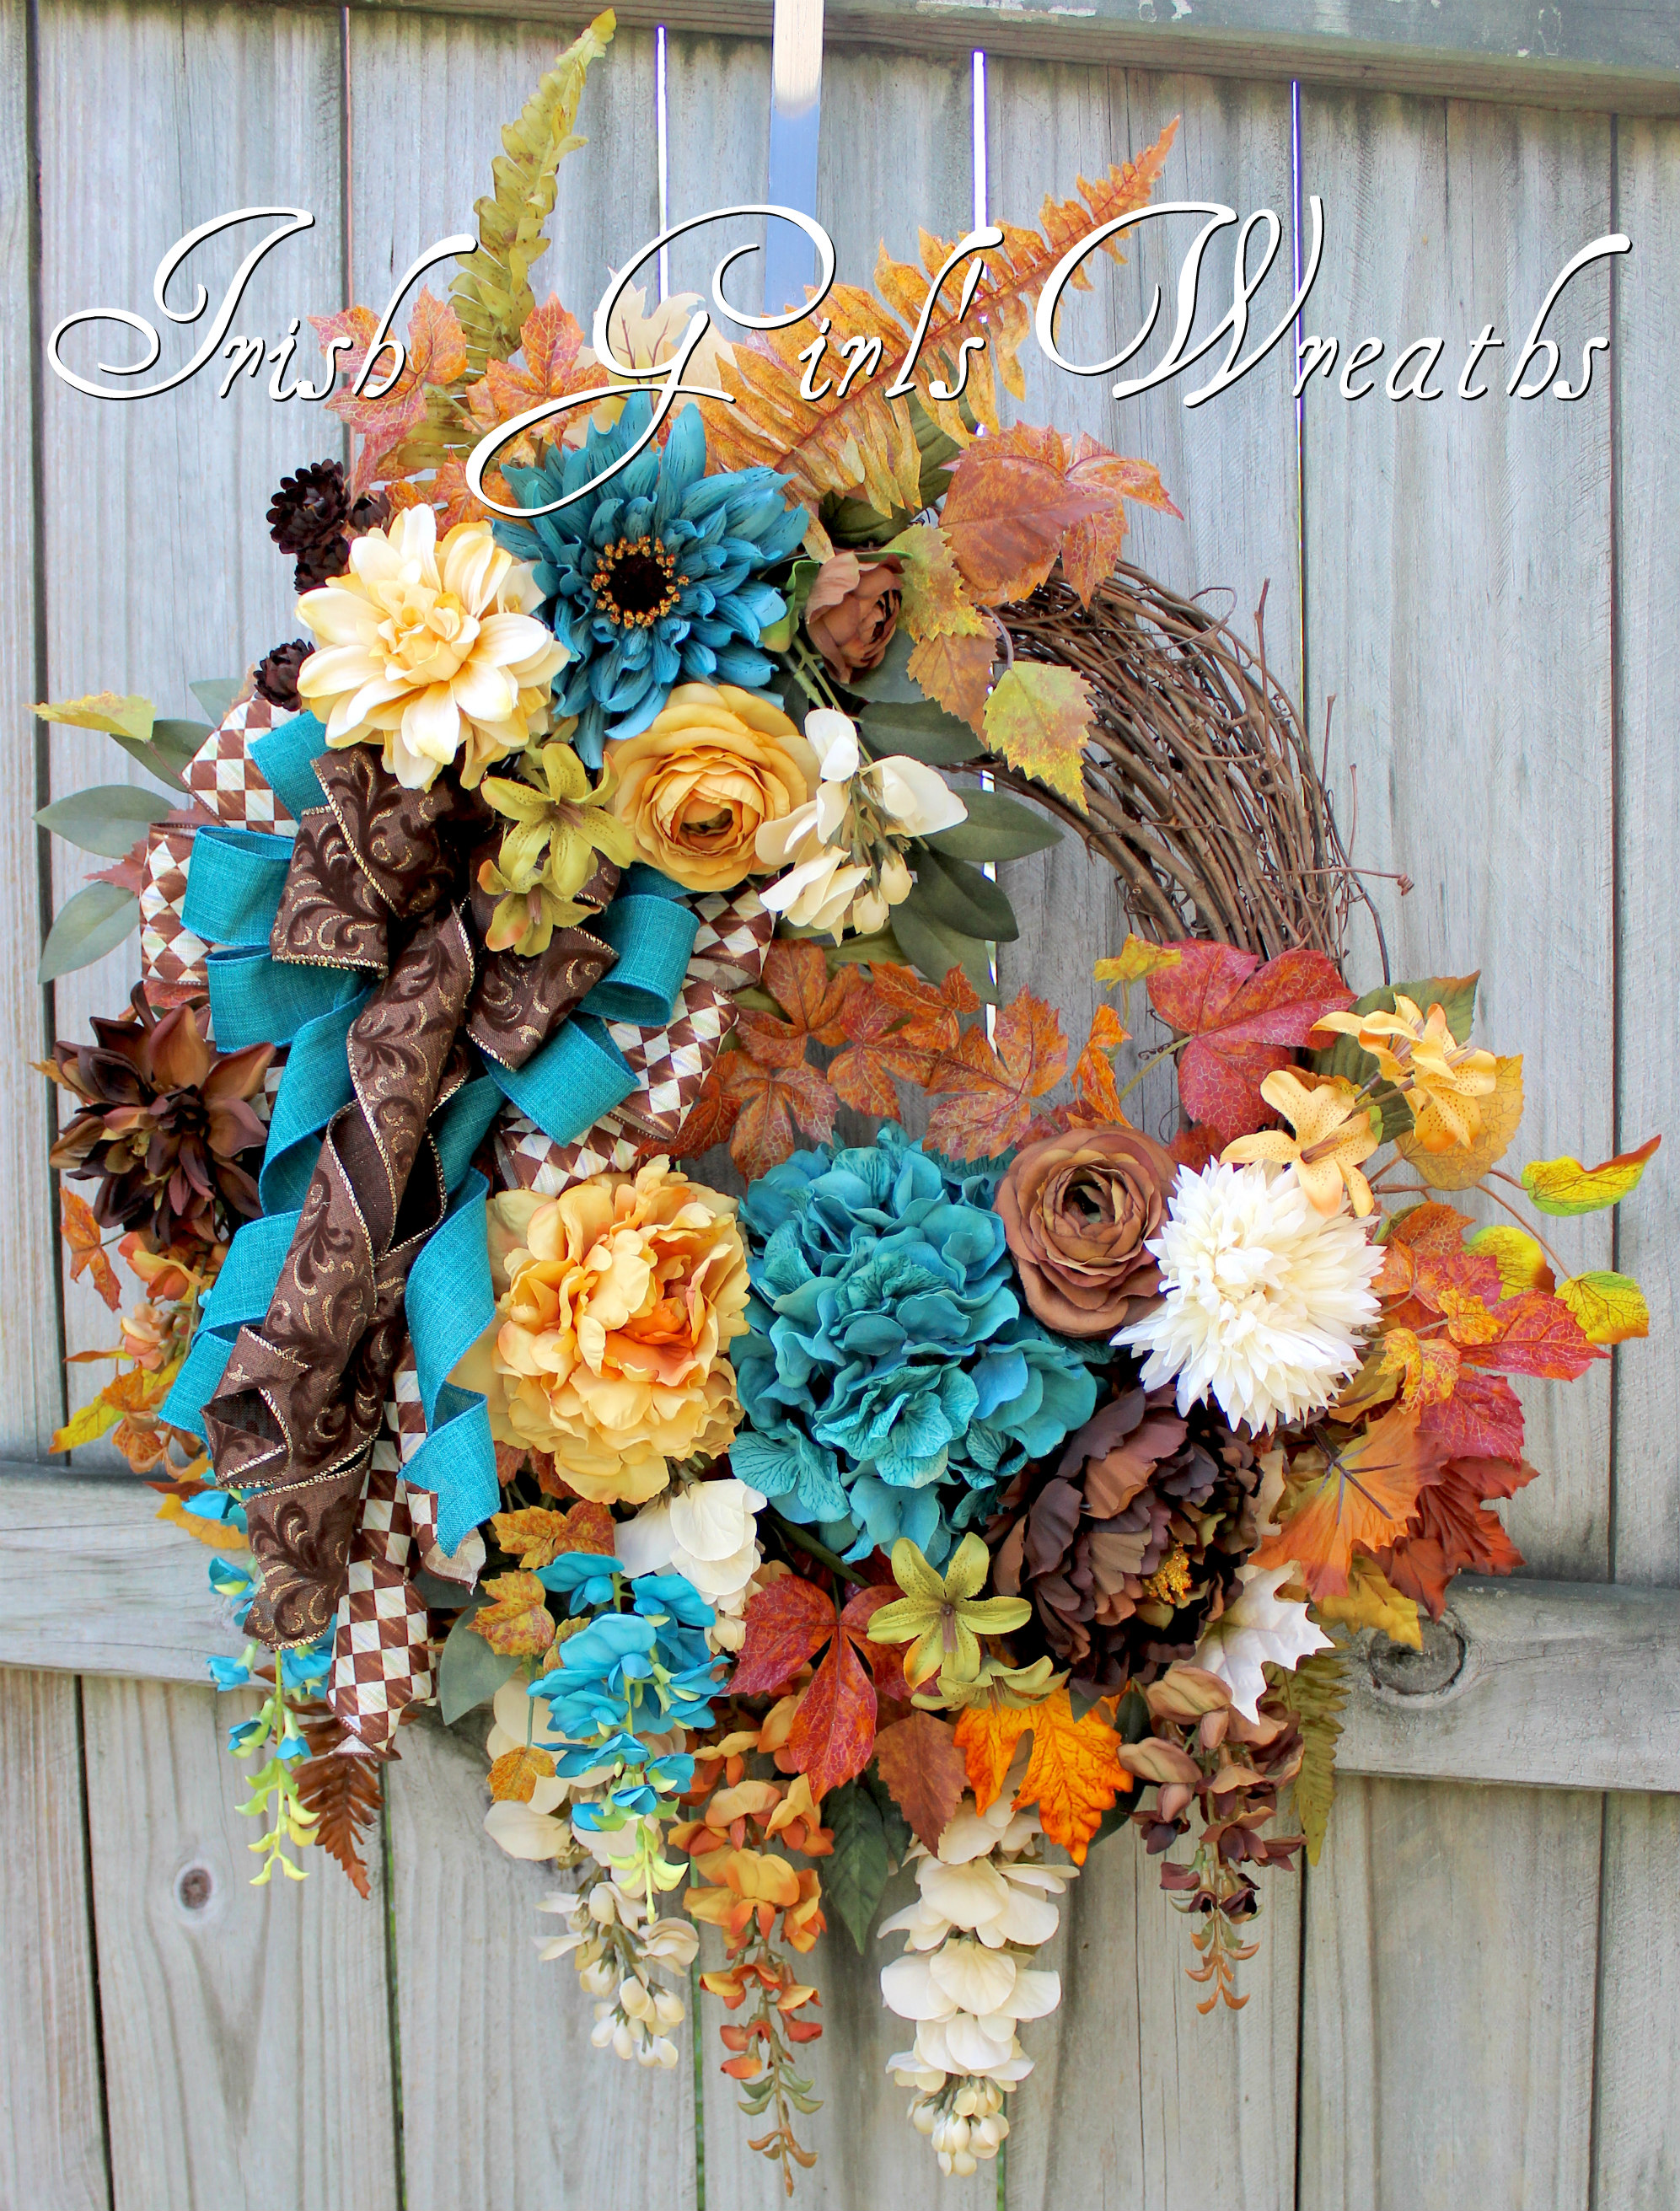 Elegant Teal Ivory Brown Extra Large Fall Wisteria Wreath, Gold, Cream, Tuscan Autumn Wreath